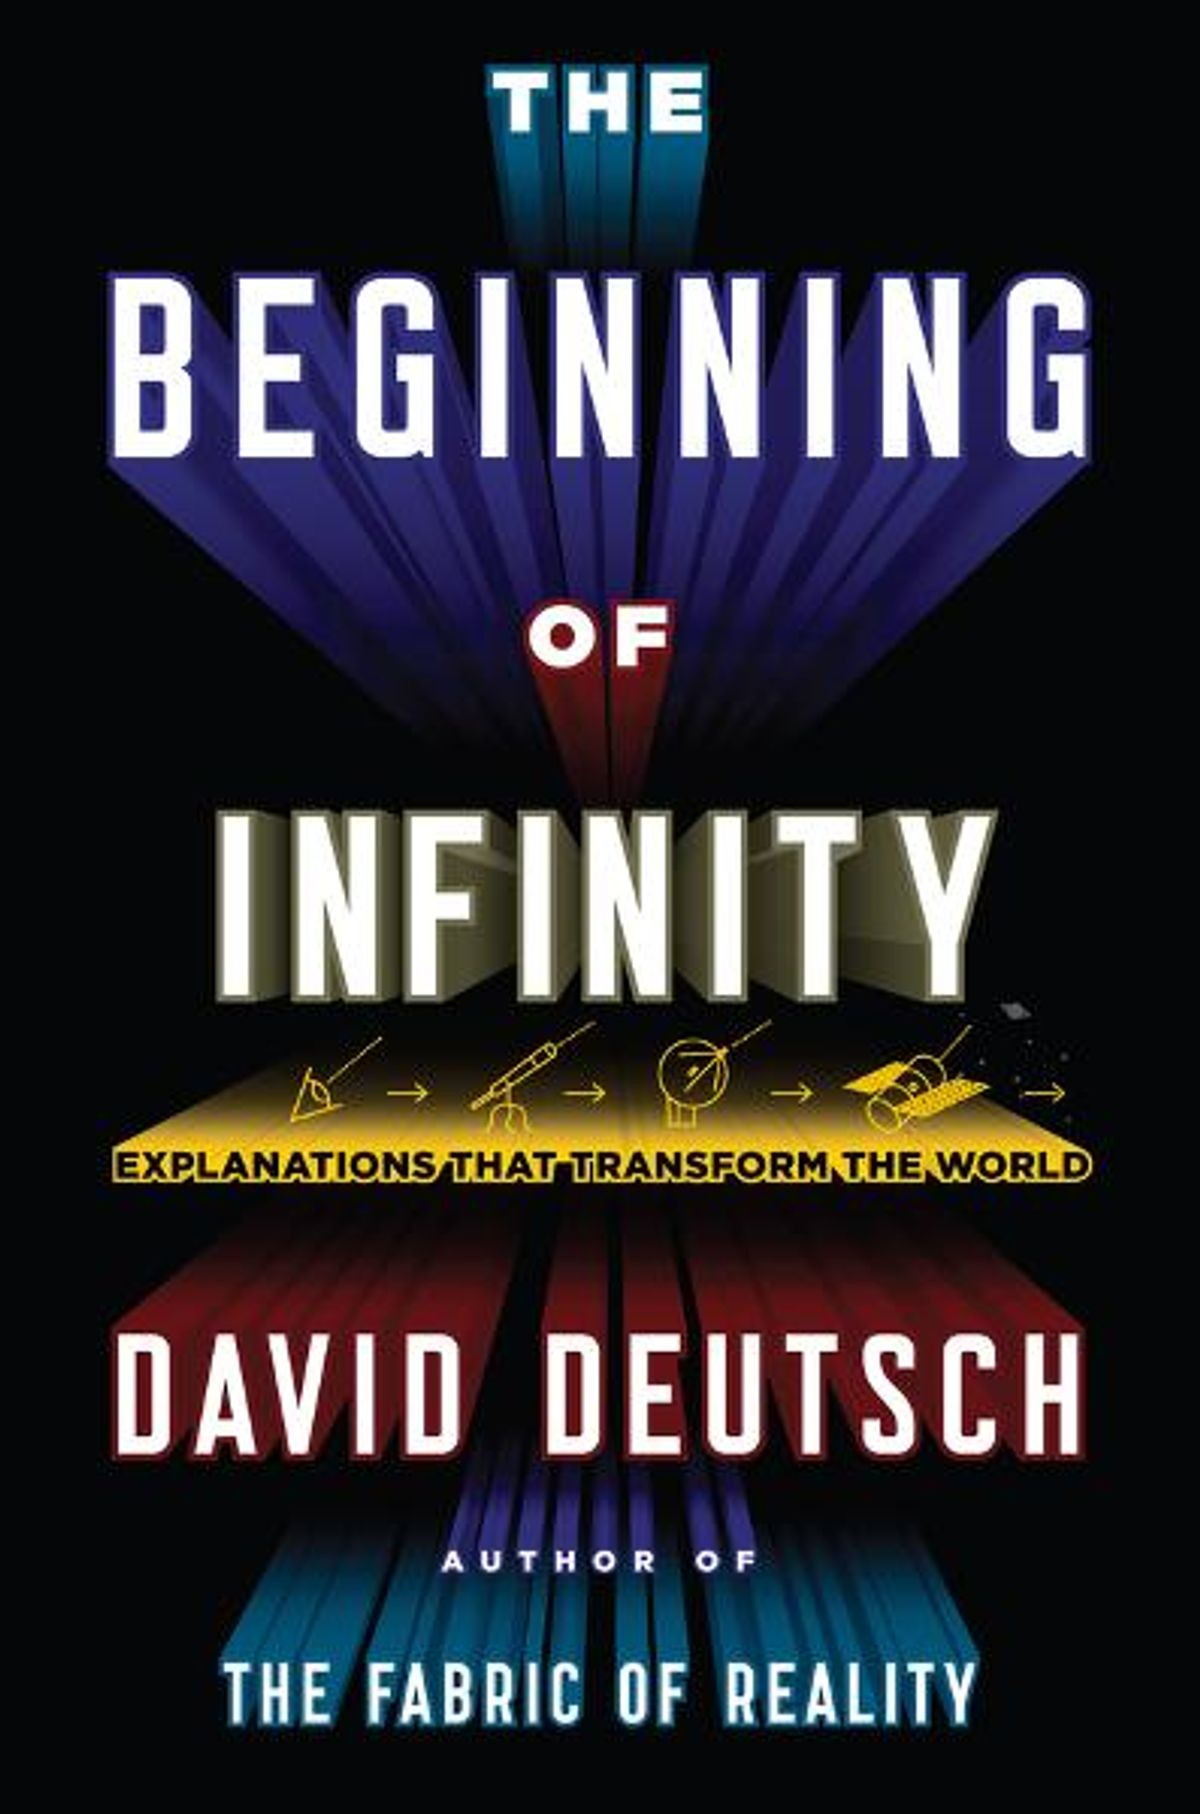 The cover of The Beginning of Infinity